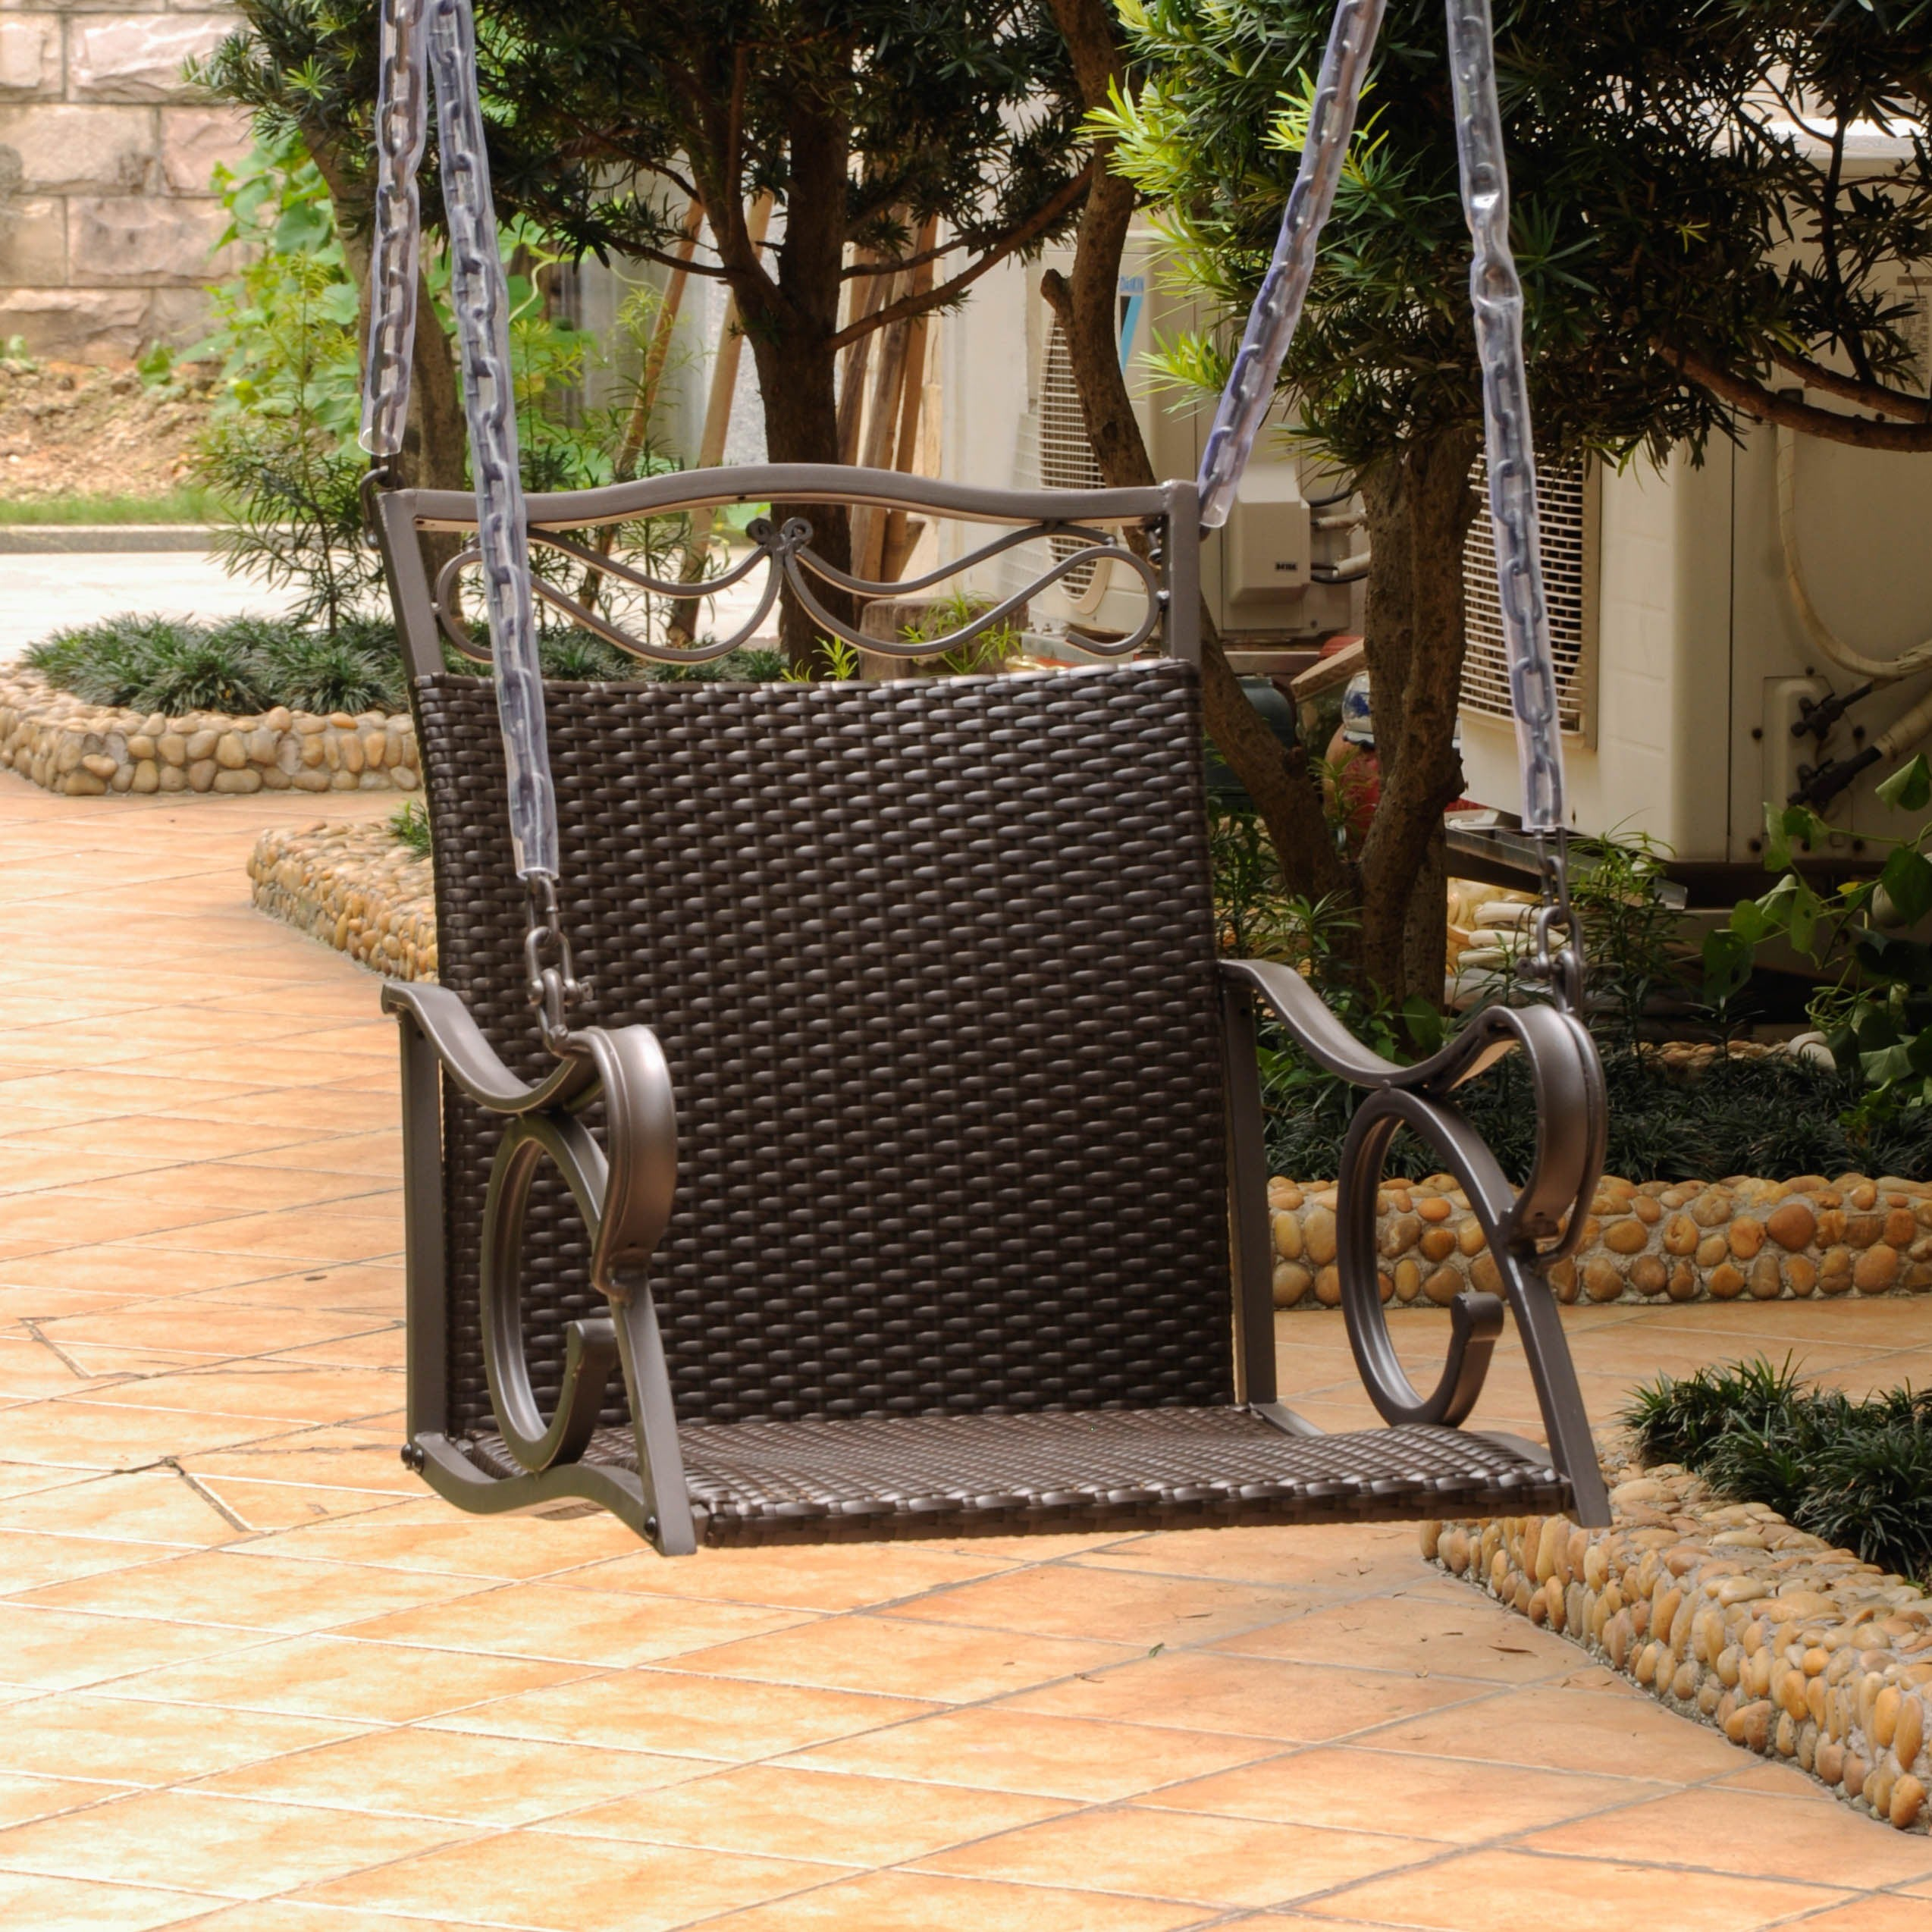 mc wicker decor swing chairs roma porch resin brylanehome outdoor